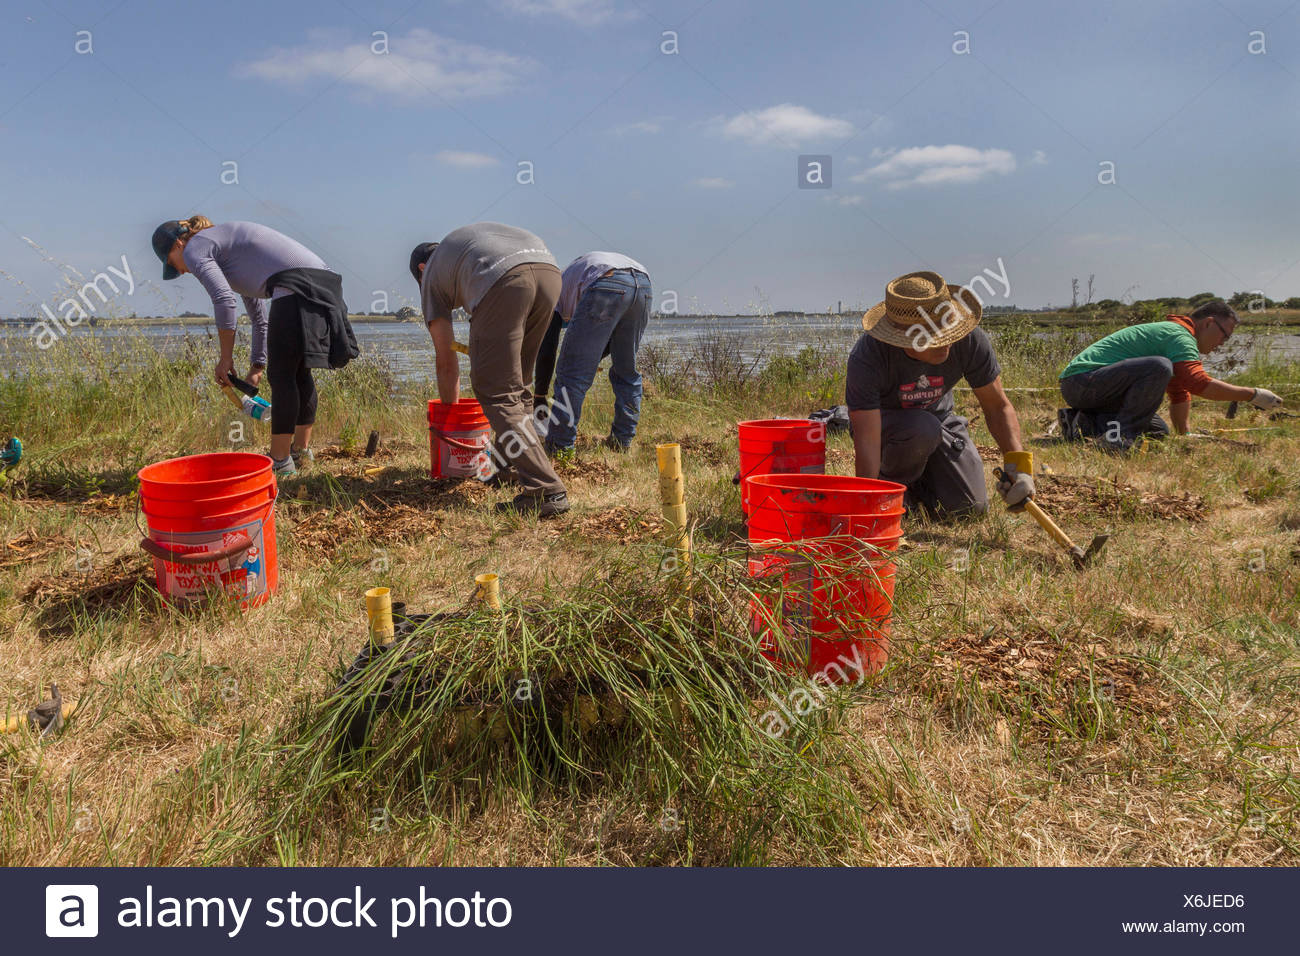 Five people working at cleanup event,MLK Shoreline,Oakland,California,USA - Stock Image